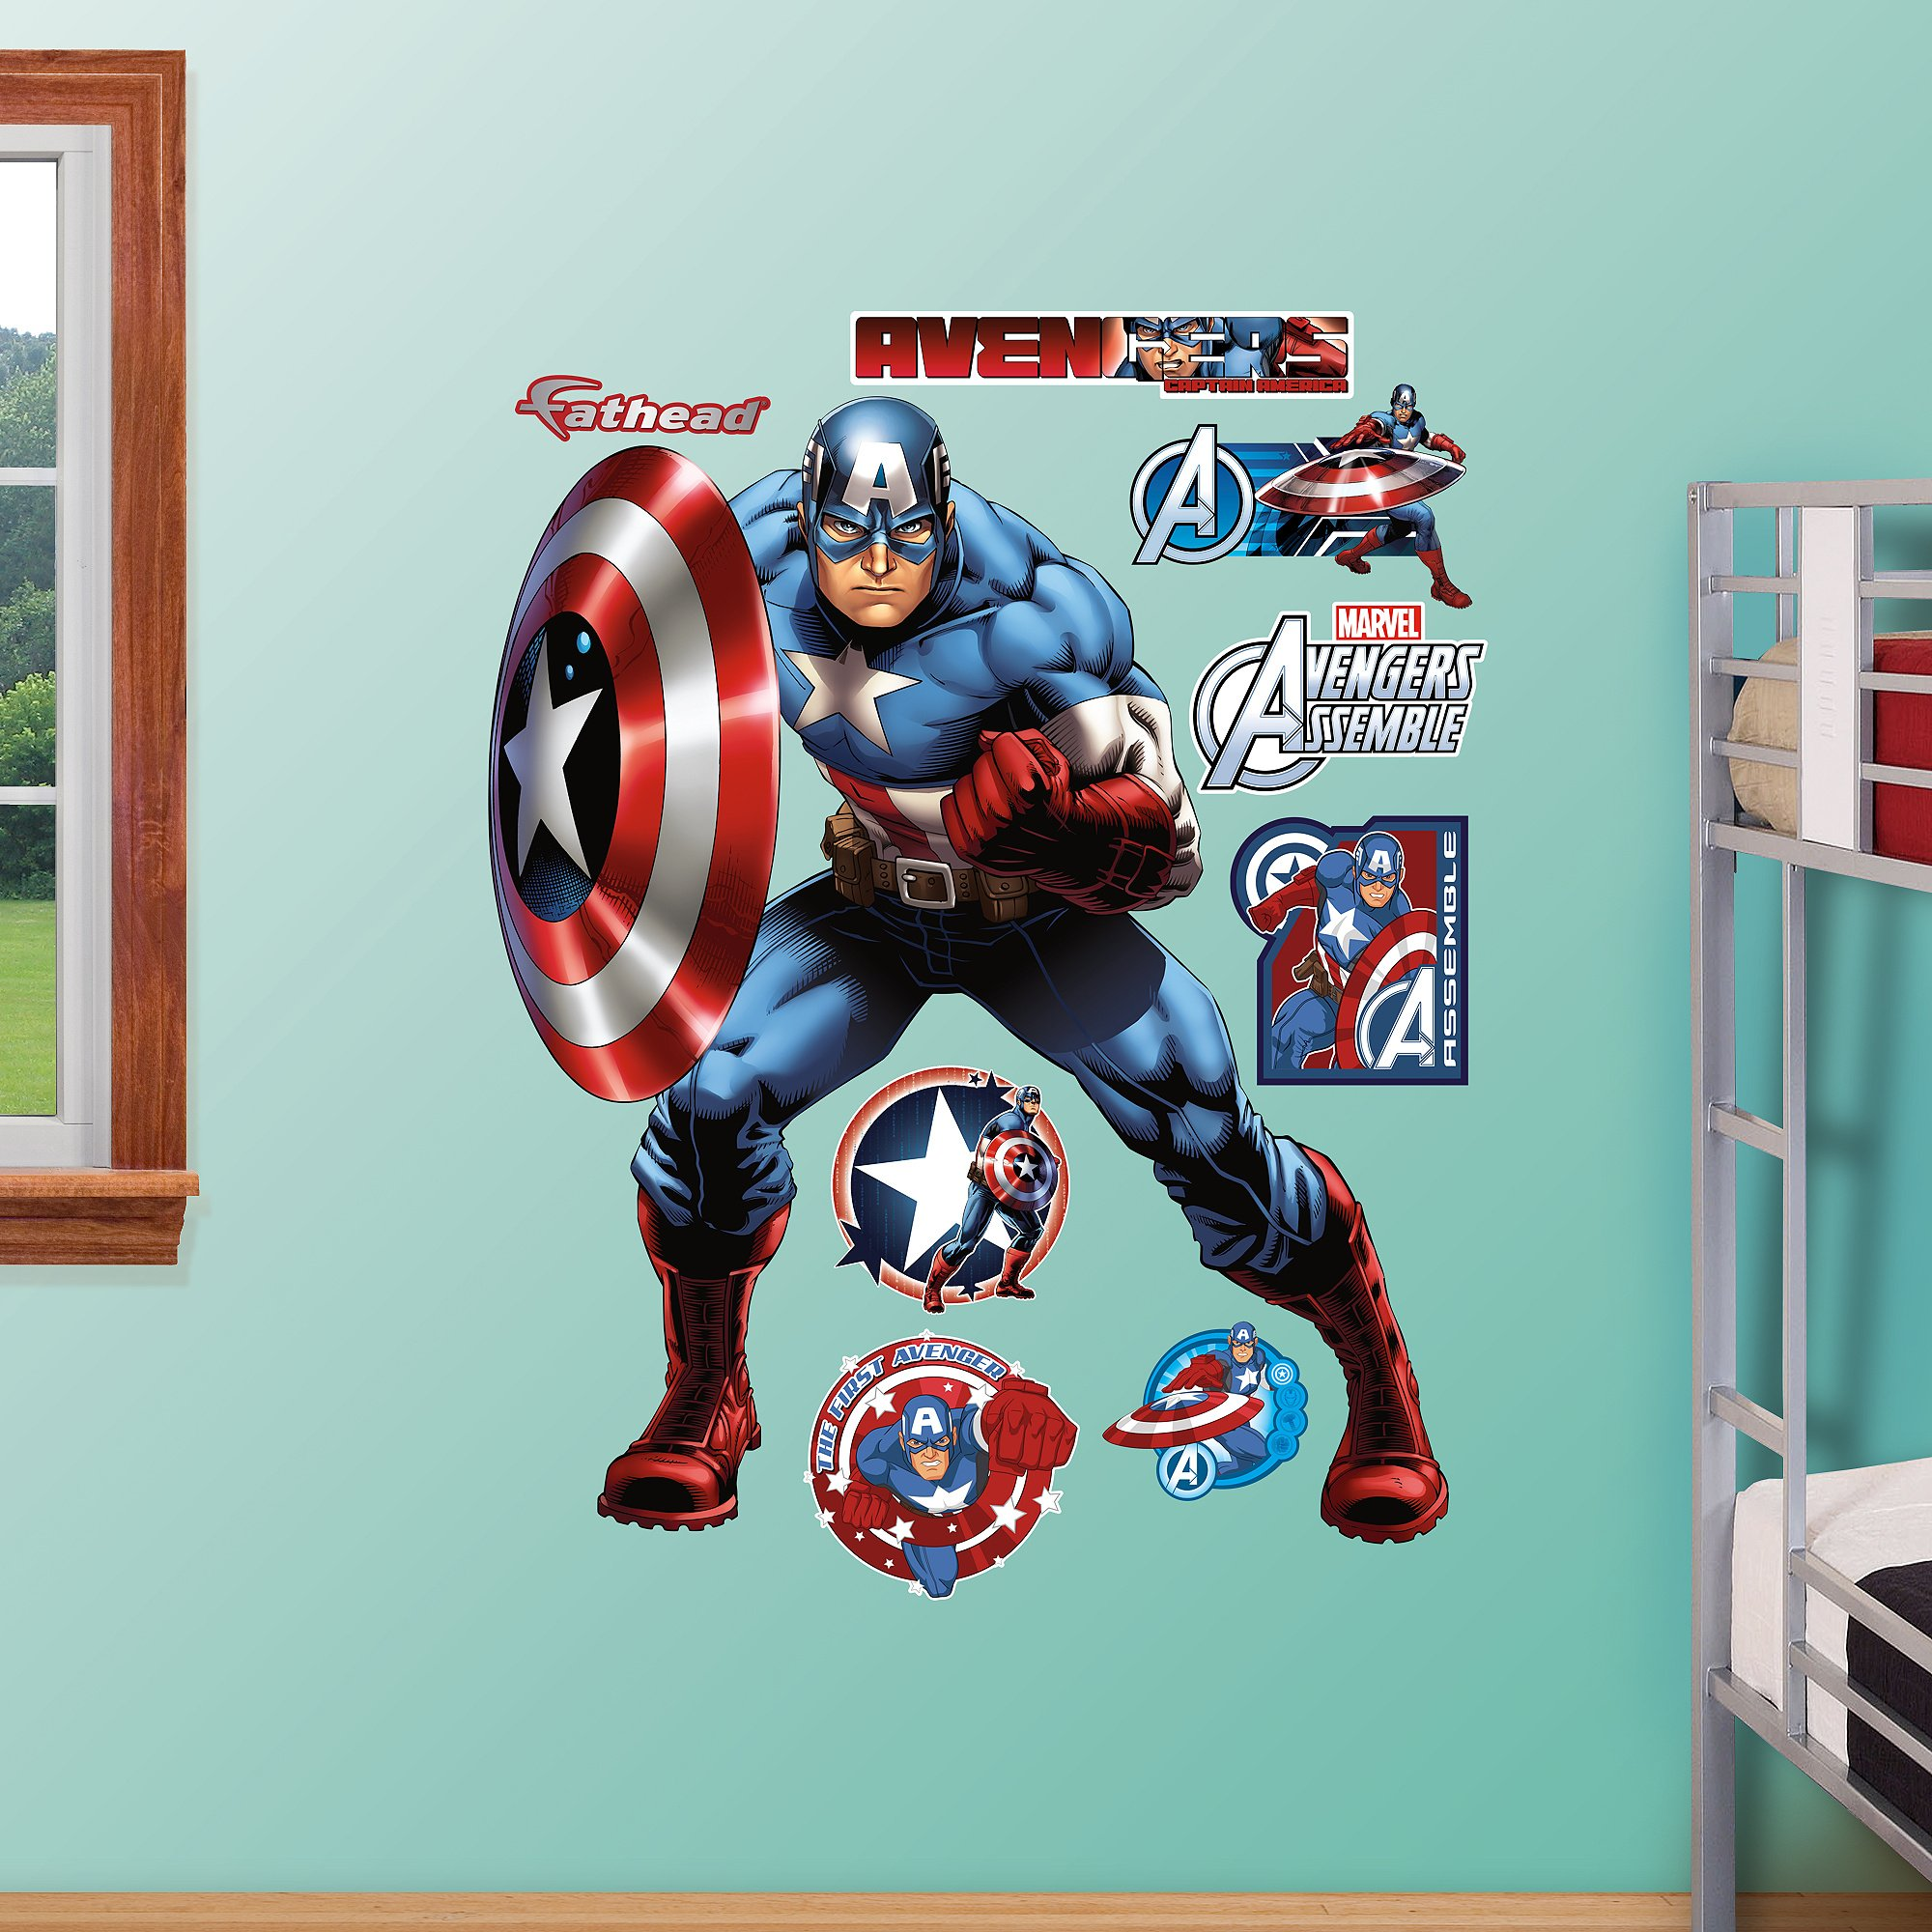 Fathead Captain America-Avengers Assemble Real Big Wall Decal by FATHEAD